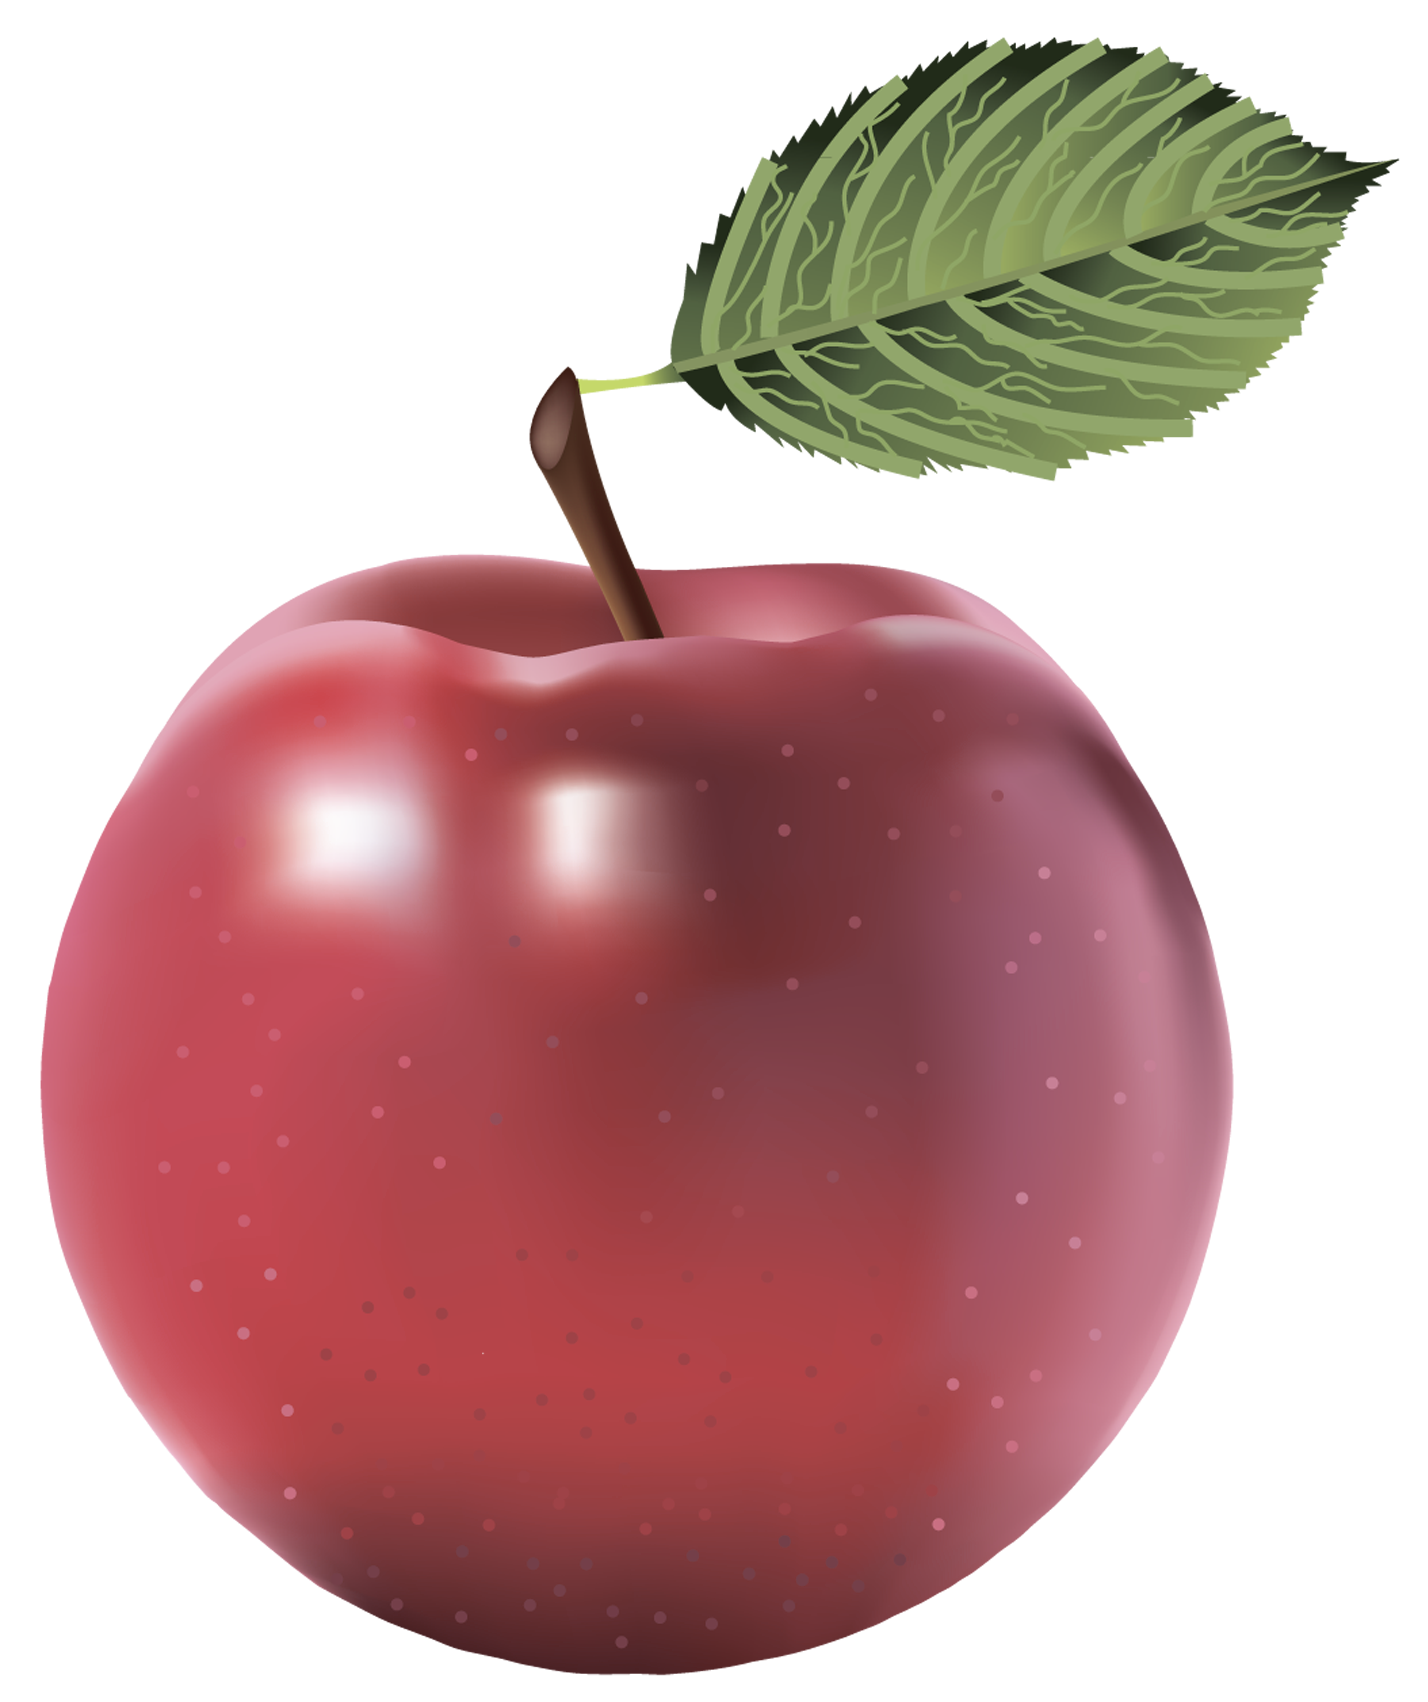 Painted apple clipart vector freeuse Large Red Painted Apple PNG Clipart | FRUIT AND VEGETABLES CLIP ART ... vector freeuse